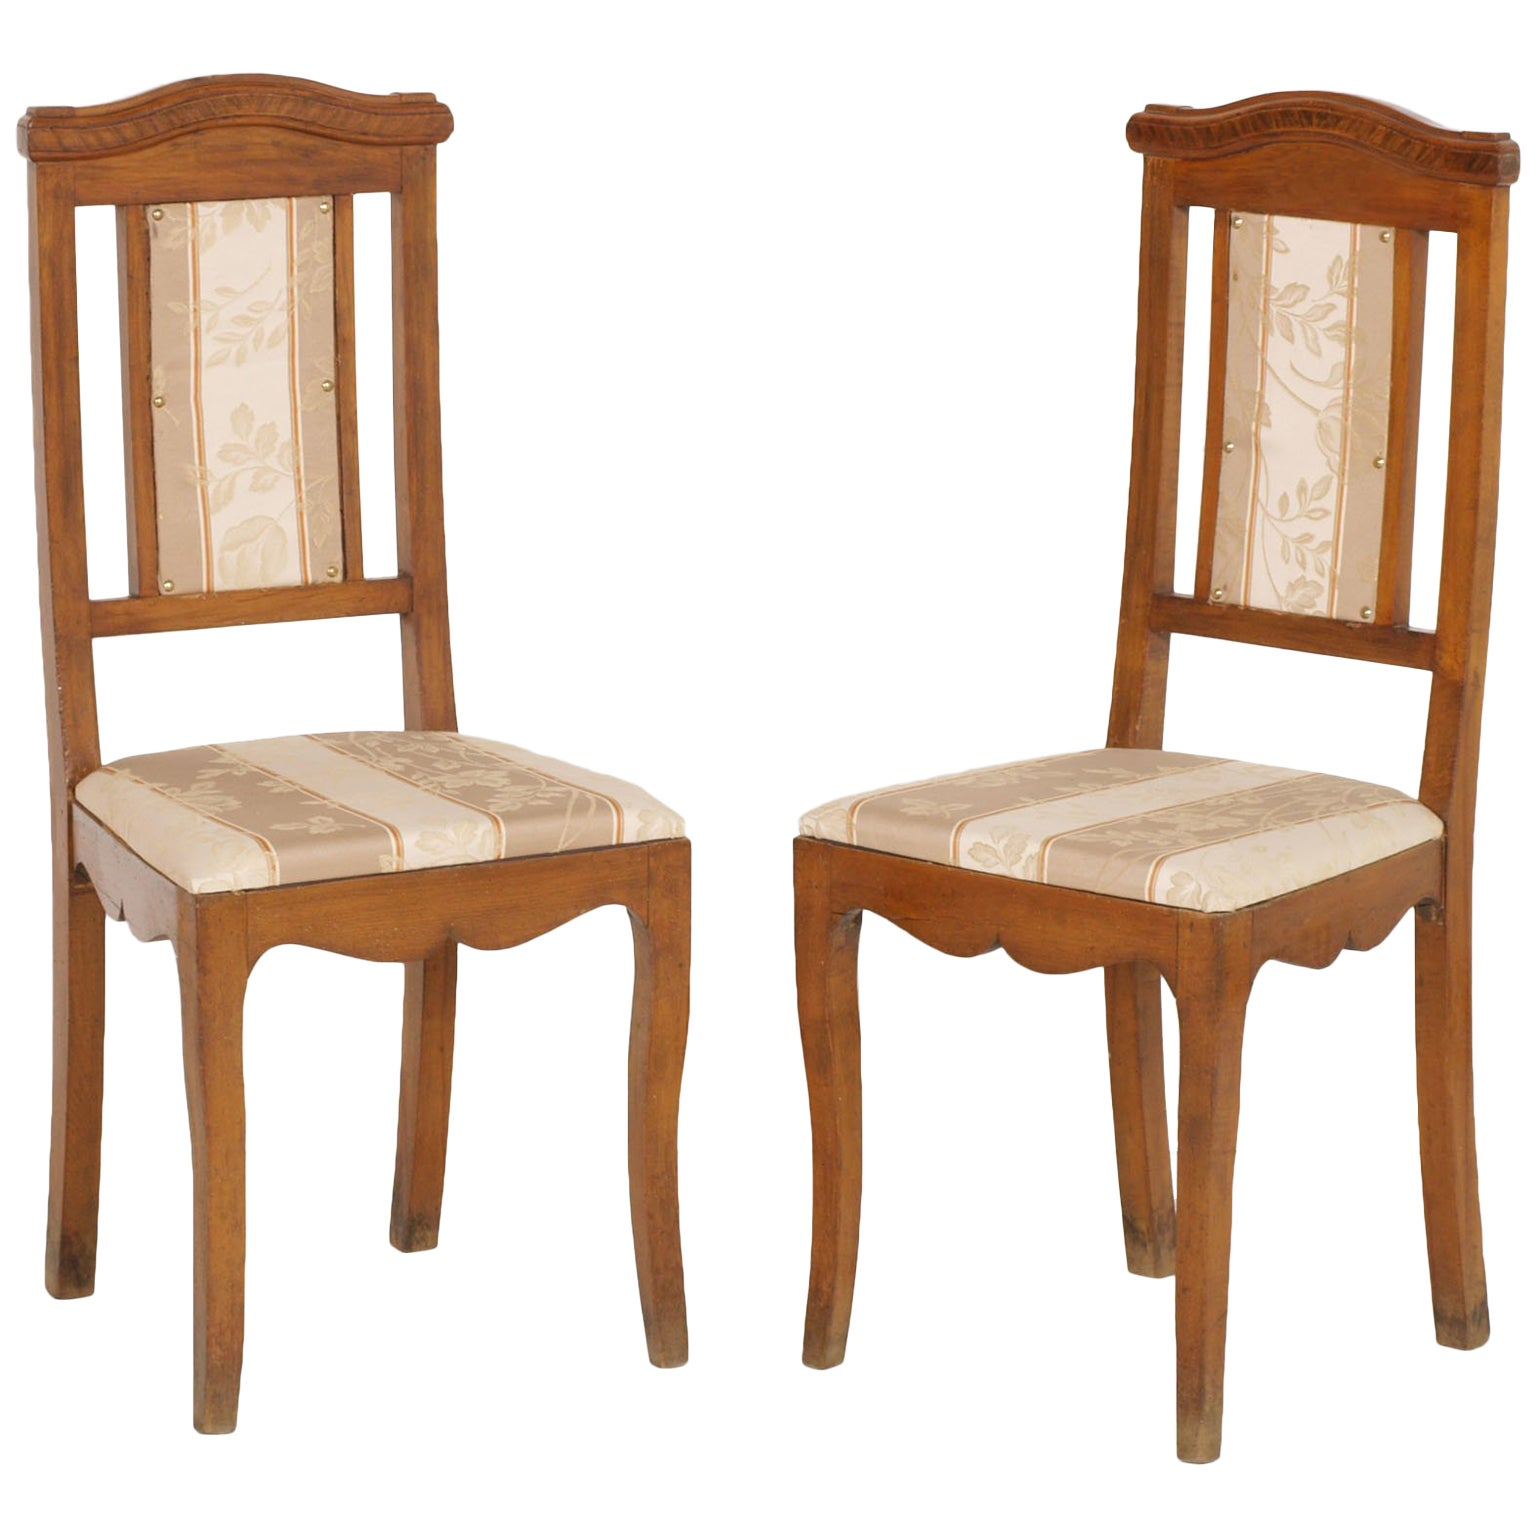 Art Nouveau Pair of Side Chairs in Walnut, Restored & New Upholstered